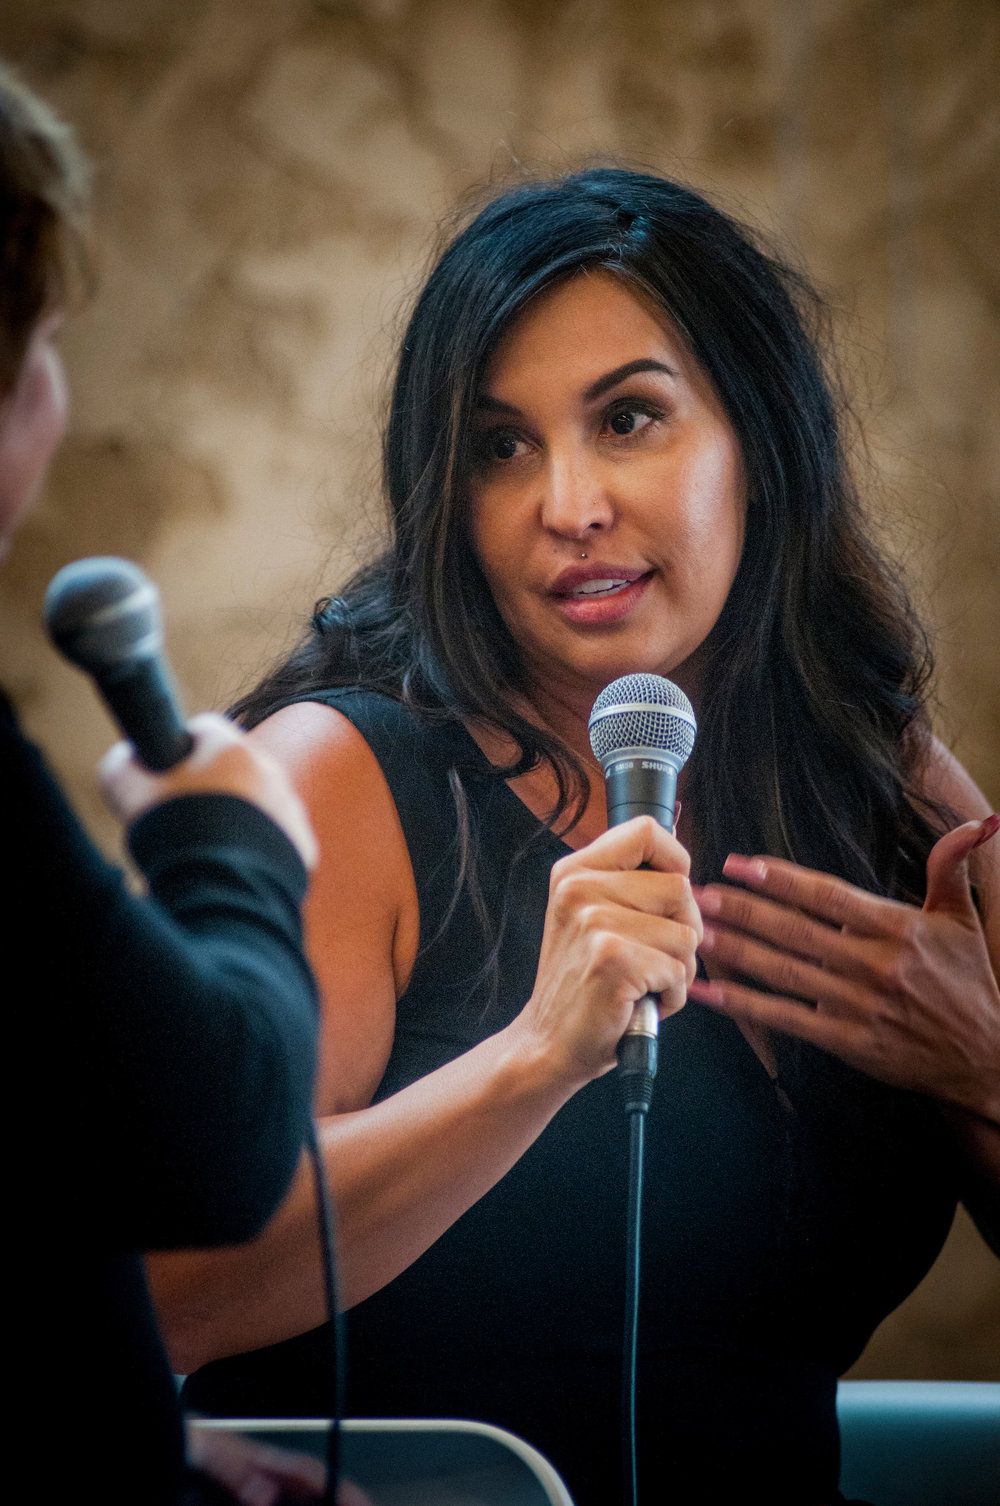 Stephanie Vasquez presents at the 2016 SOCENT Summit. Photo Credit: Rick D'Elia, D'Elia Photographic